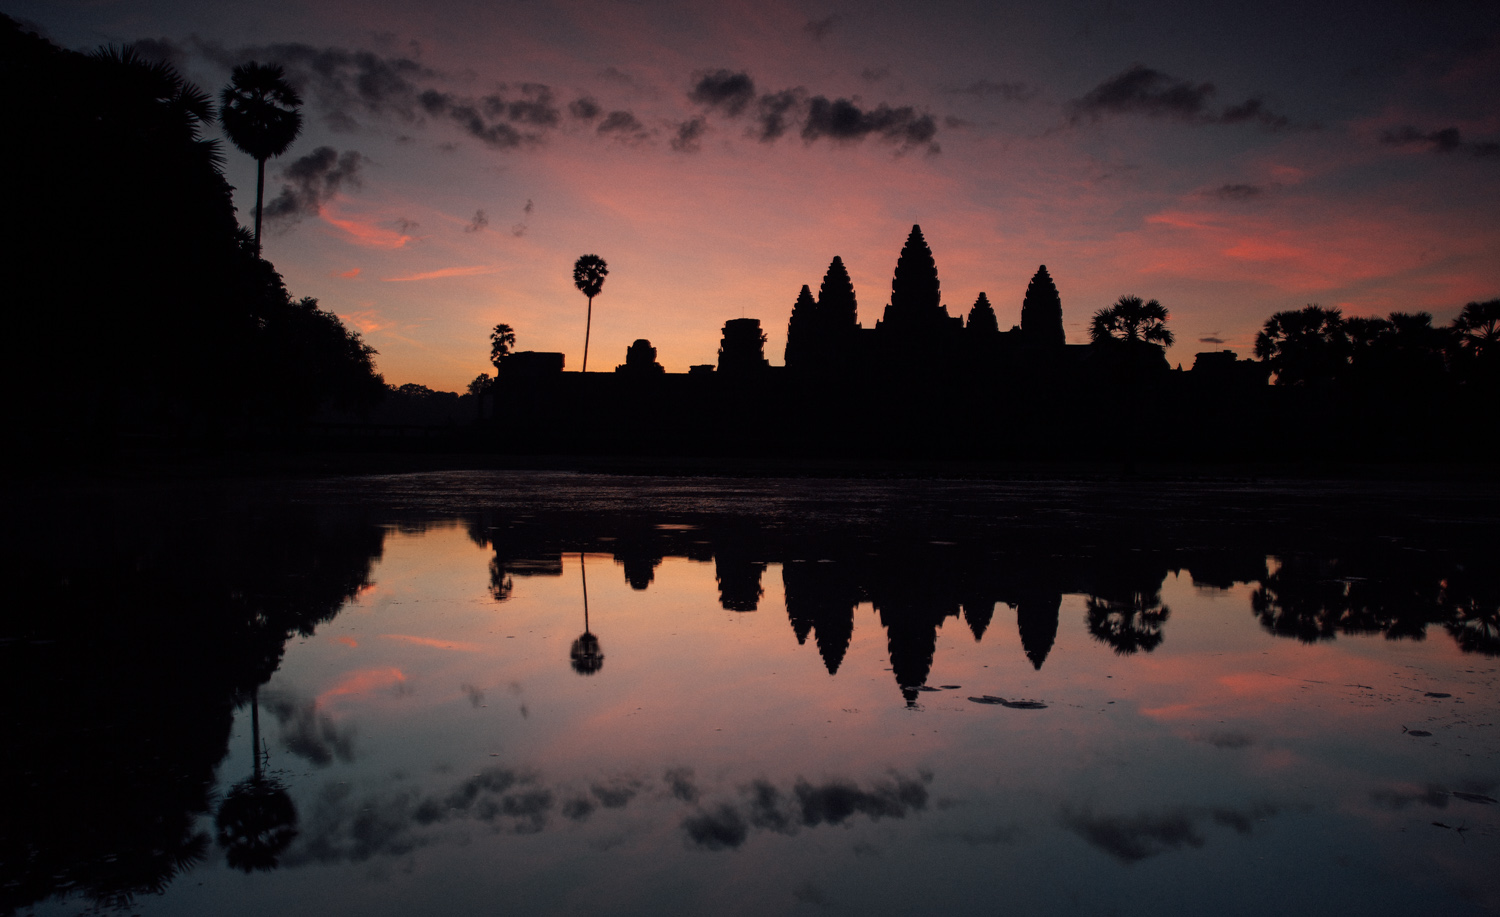 Angkor Wat at dawn, Siem Reap, Cambodia.